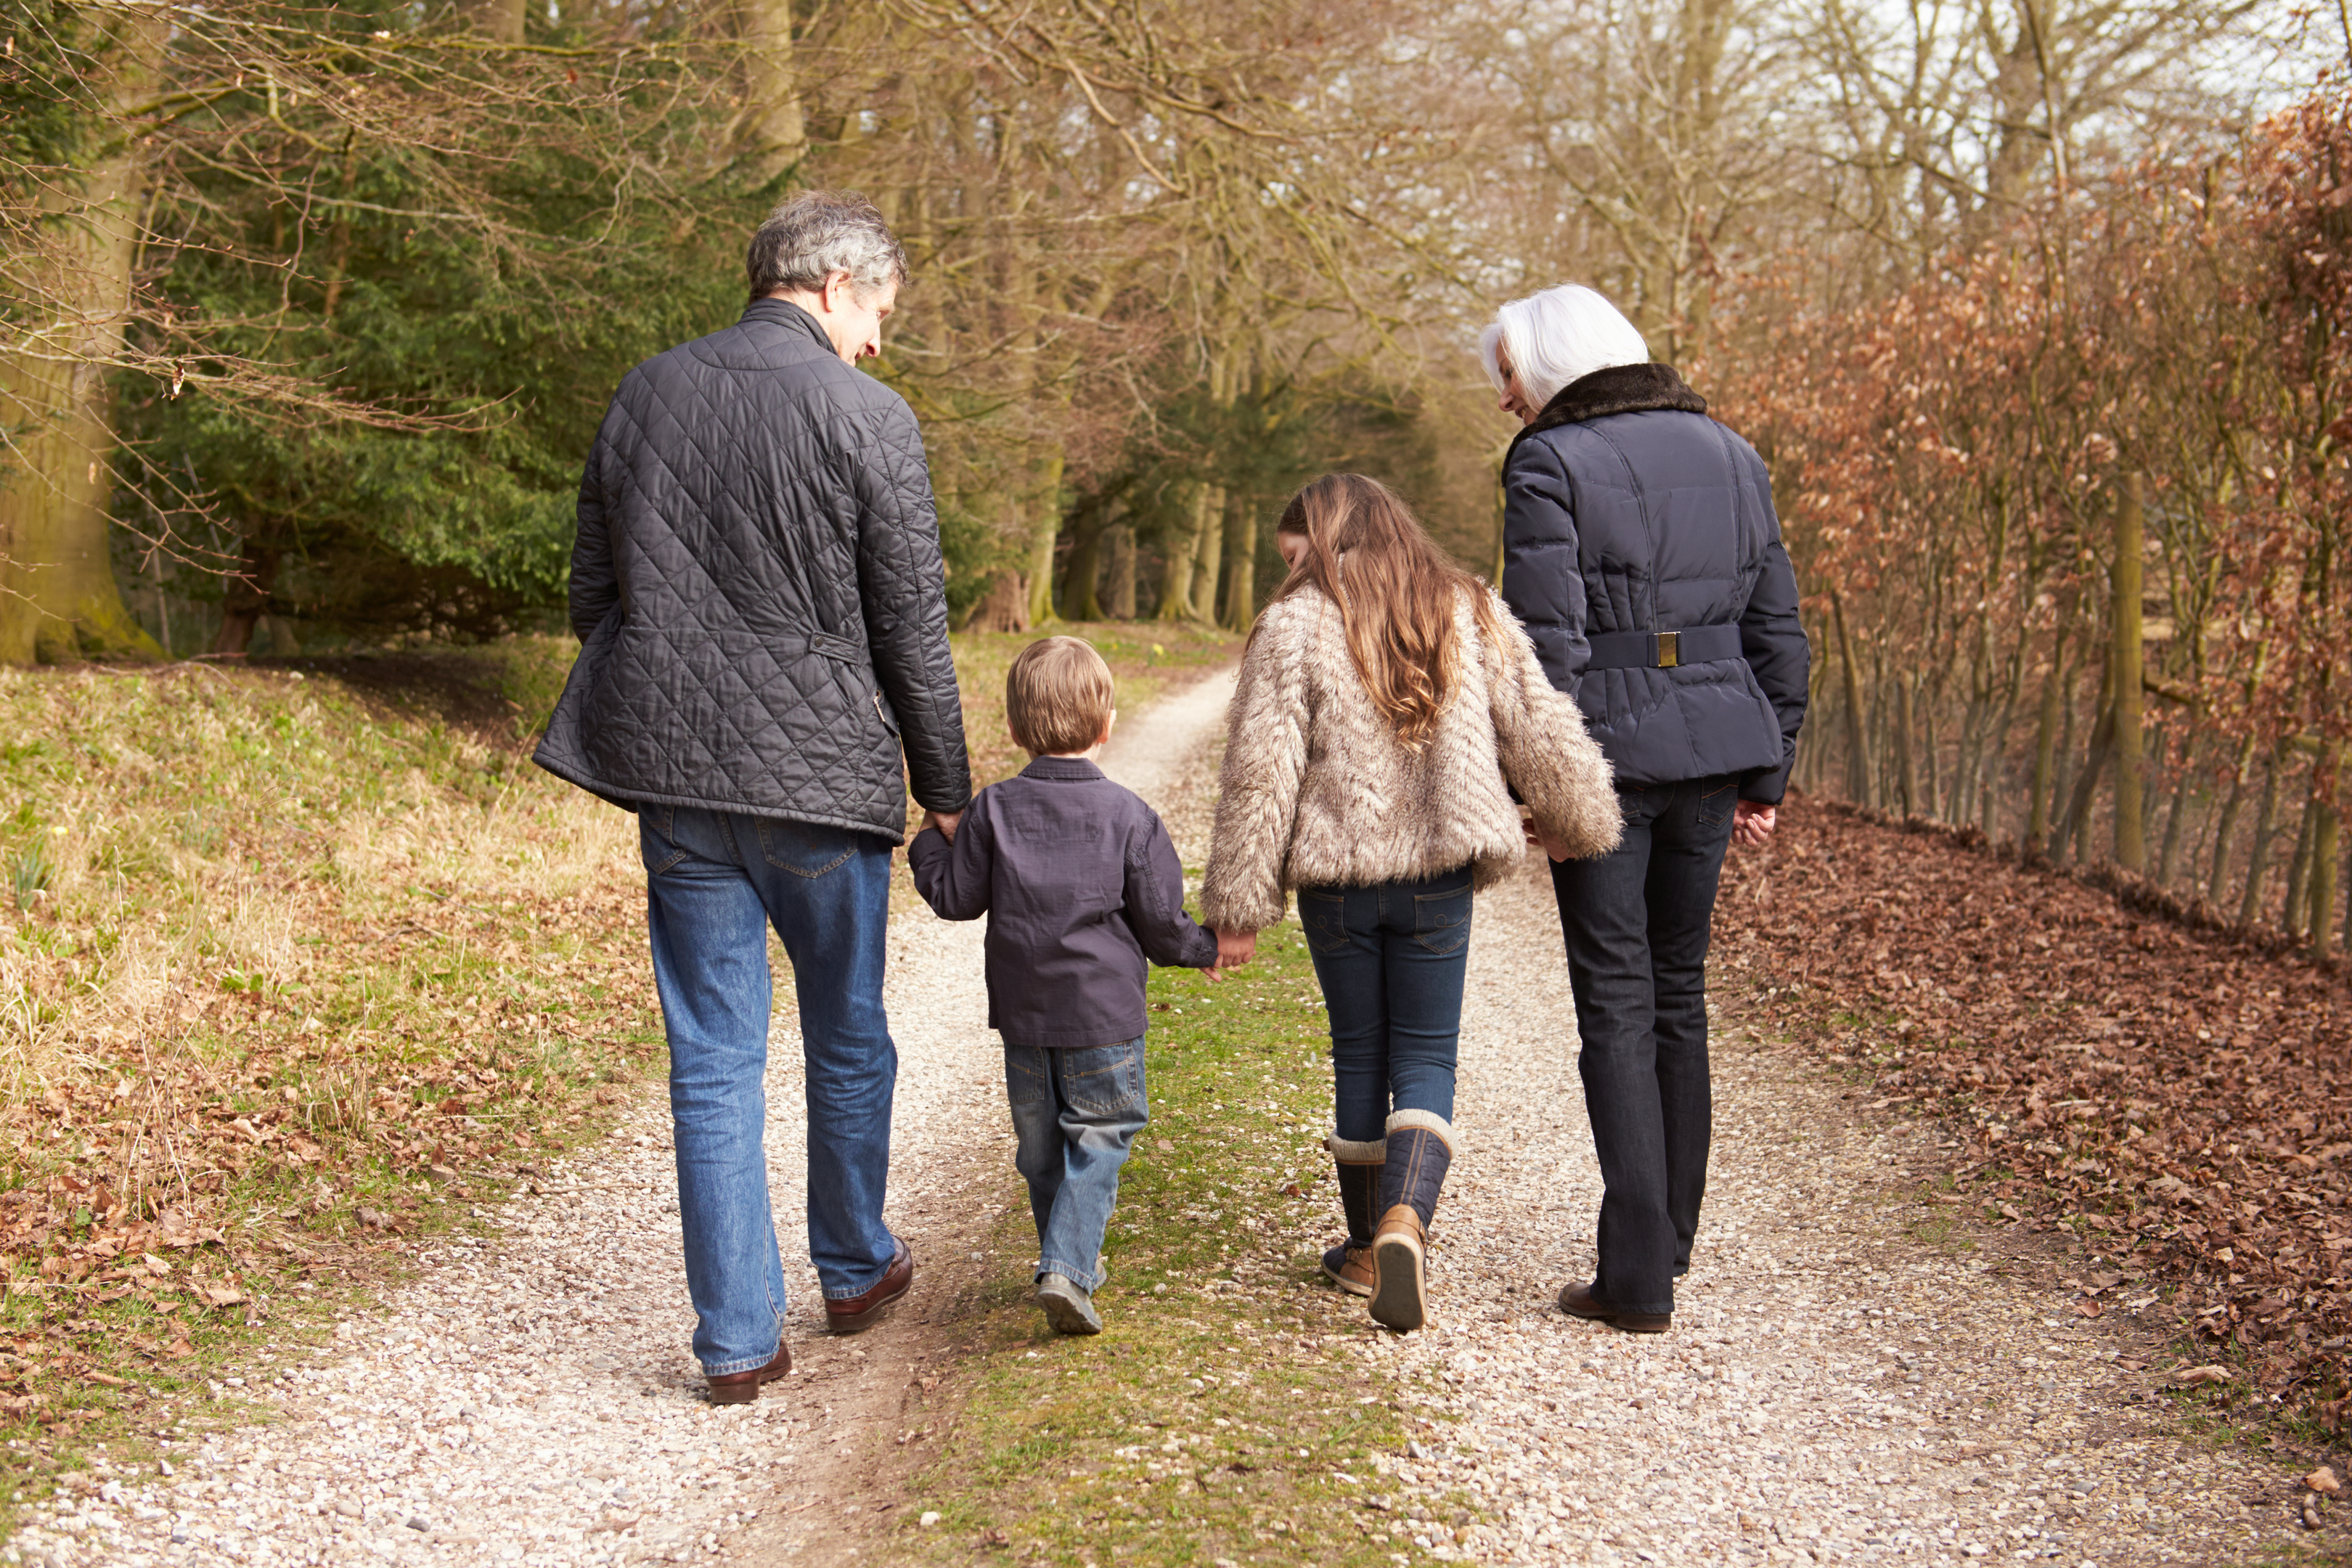 52% of grandparents said they helped parents out (Getty Images/iStock)